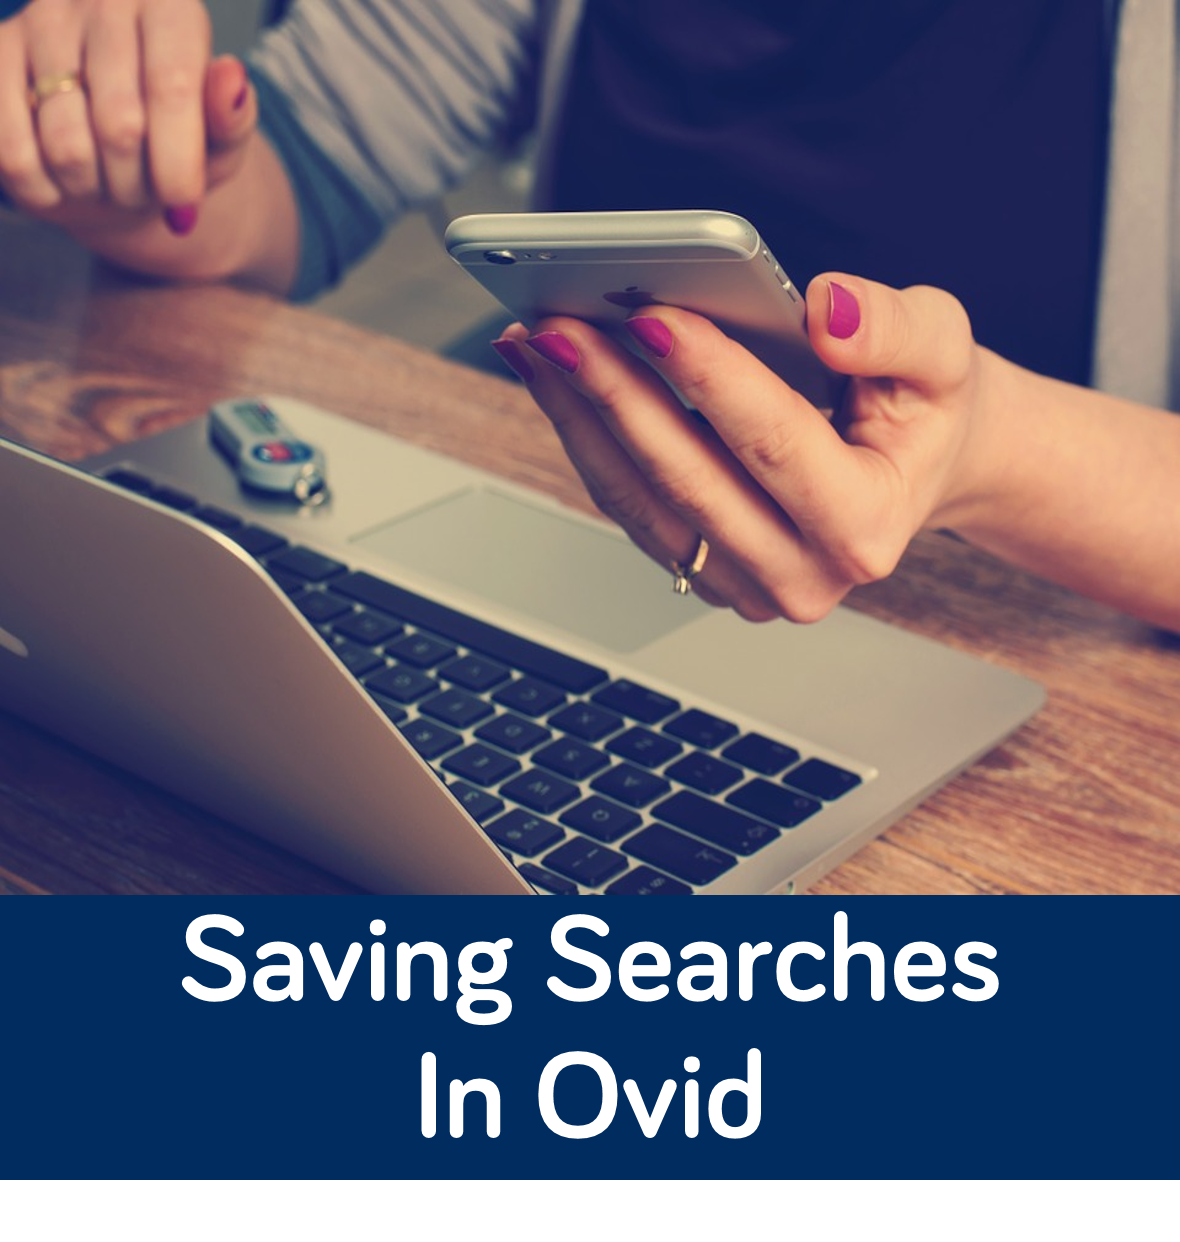 Link to video on Saving Searches in Ovid